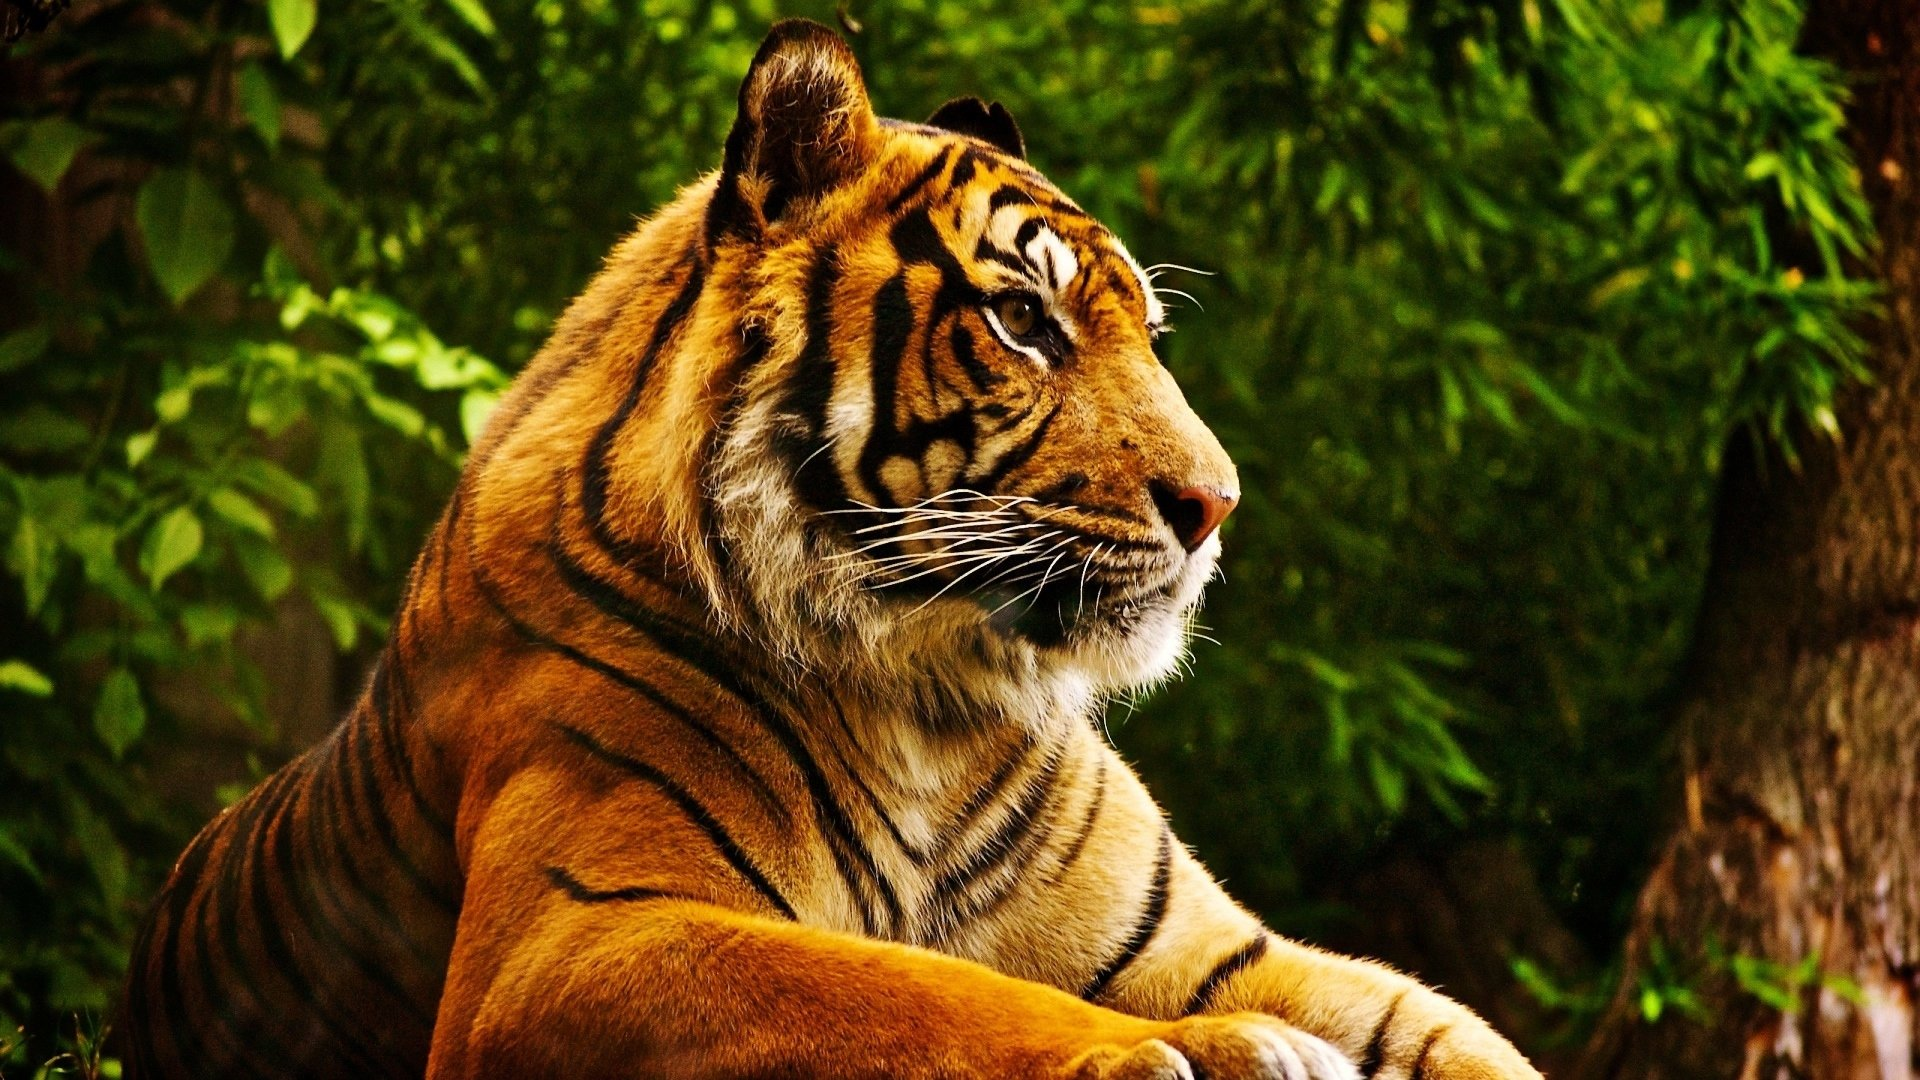 264 4k Ultra Hd Tiger Wallpapers Background Images Wallpaper Abyss